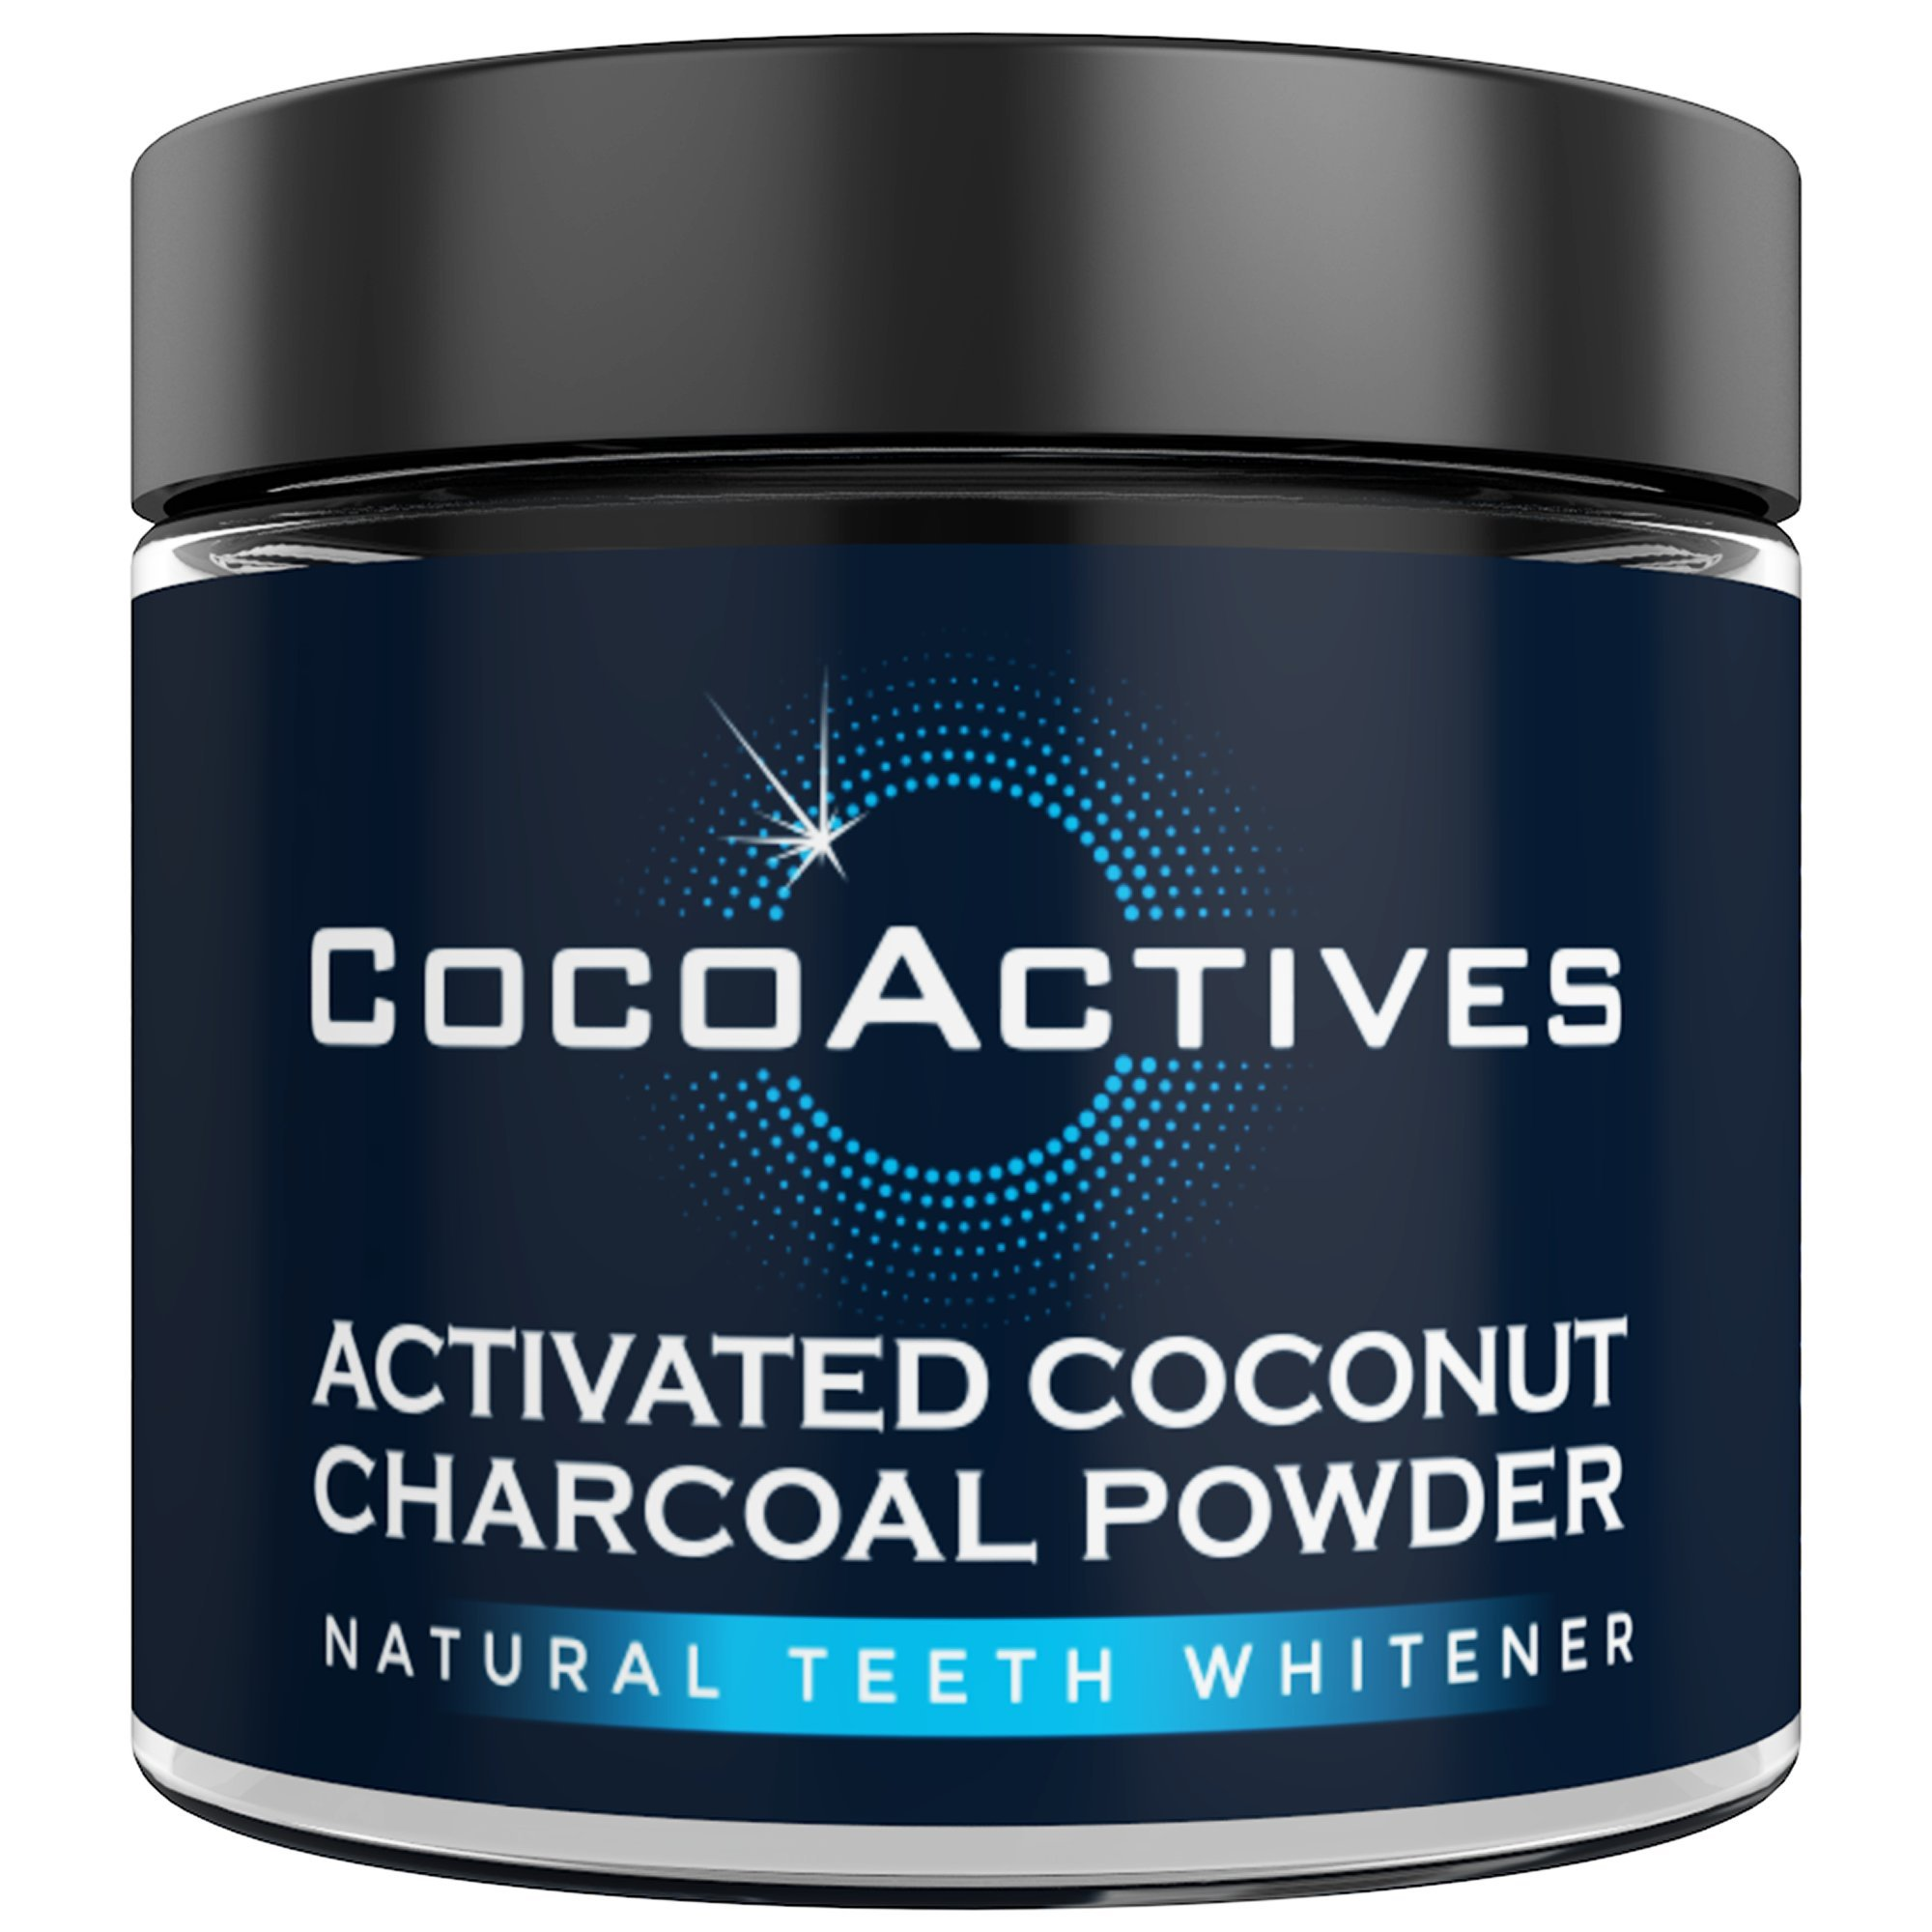 Charcoal Teeth Powder - Self Care Teeth Whitening by CocoActives - Teeth Stain Remover - All Natural - Tooth Polisher With Organic Coconut - Made in USA